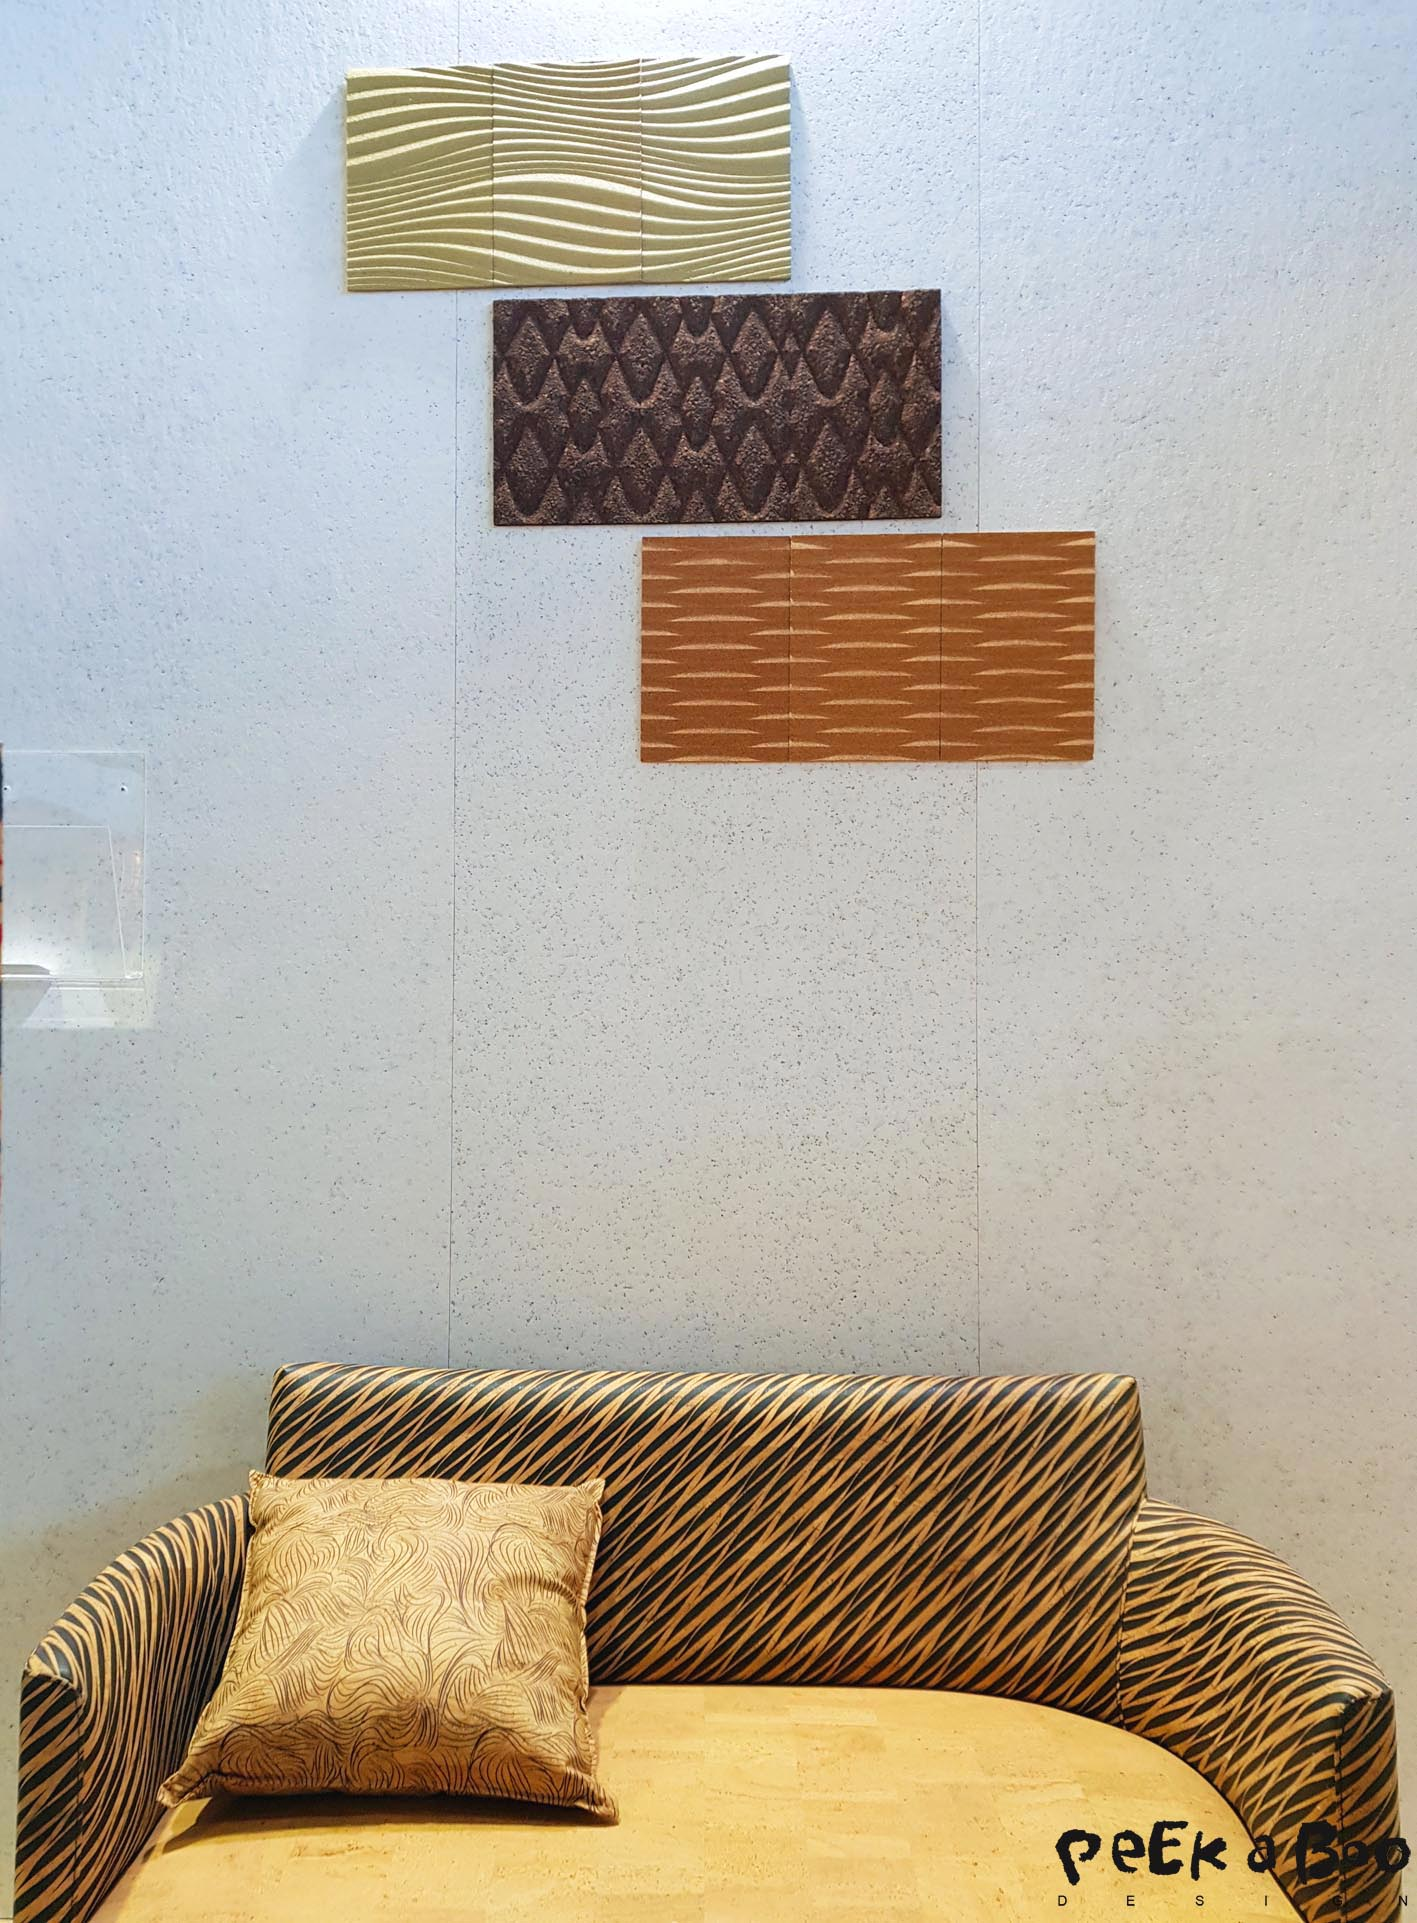 Sedacor makes all in cork, you can get cork-leather which you can use as here for uppolstering furnitures. And there is wallpaper made of very thin slices of cork. And the 3 D wallcovering which has a sound absorbing effect.